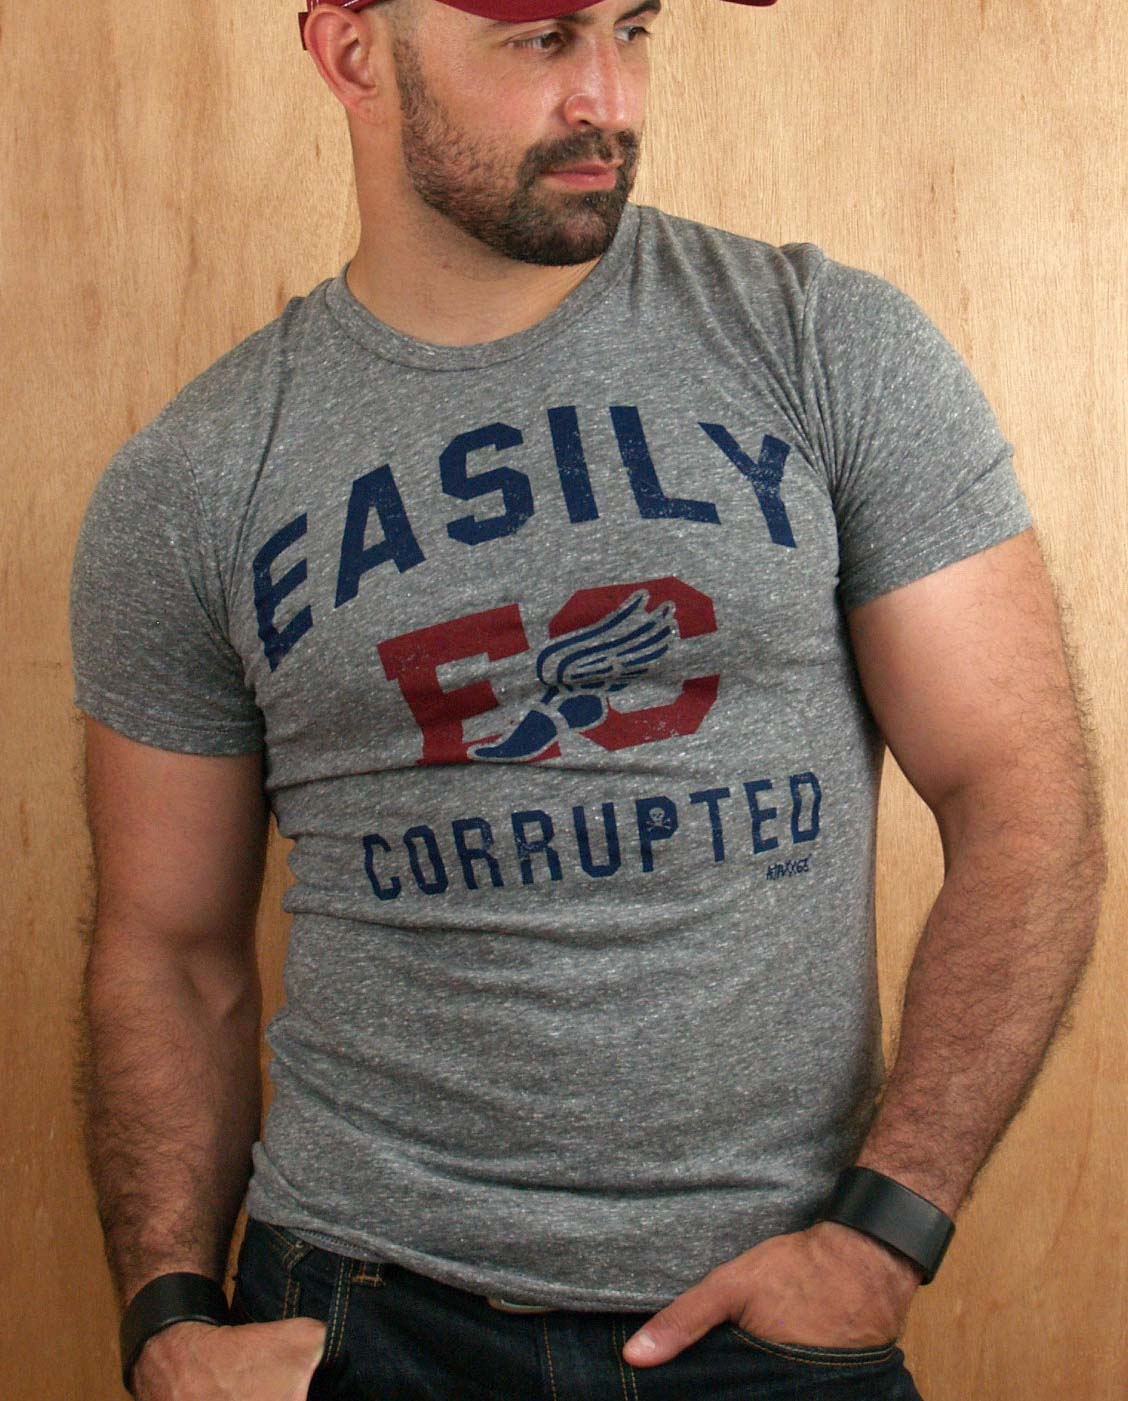 Male model wearing Ajaxx63 Easily Corrupted Men's T-shirt